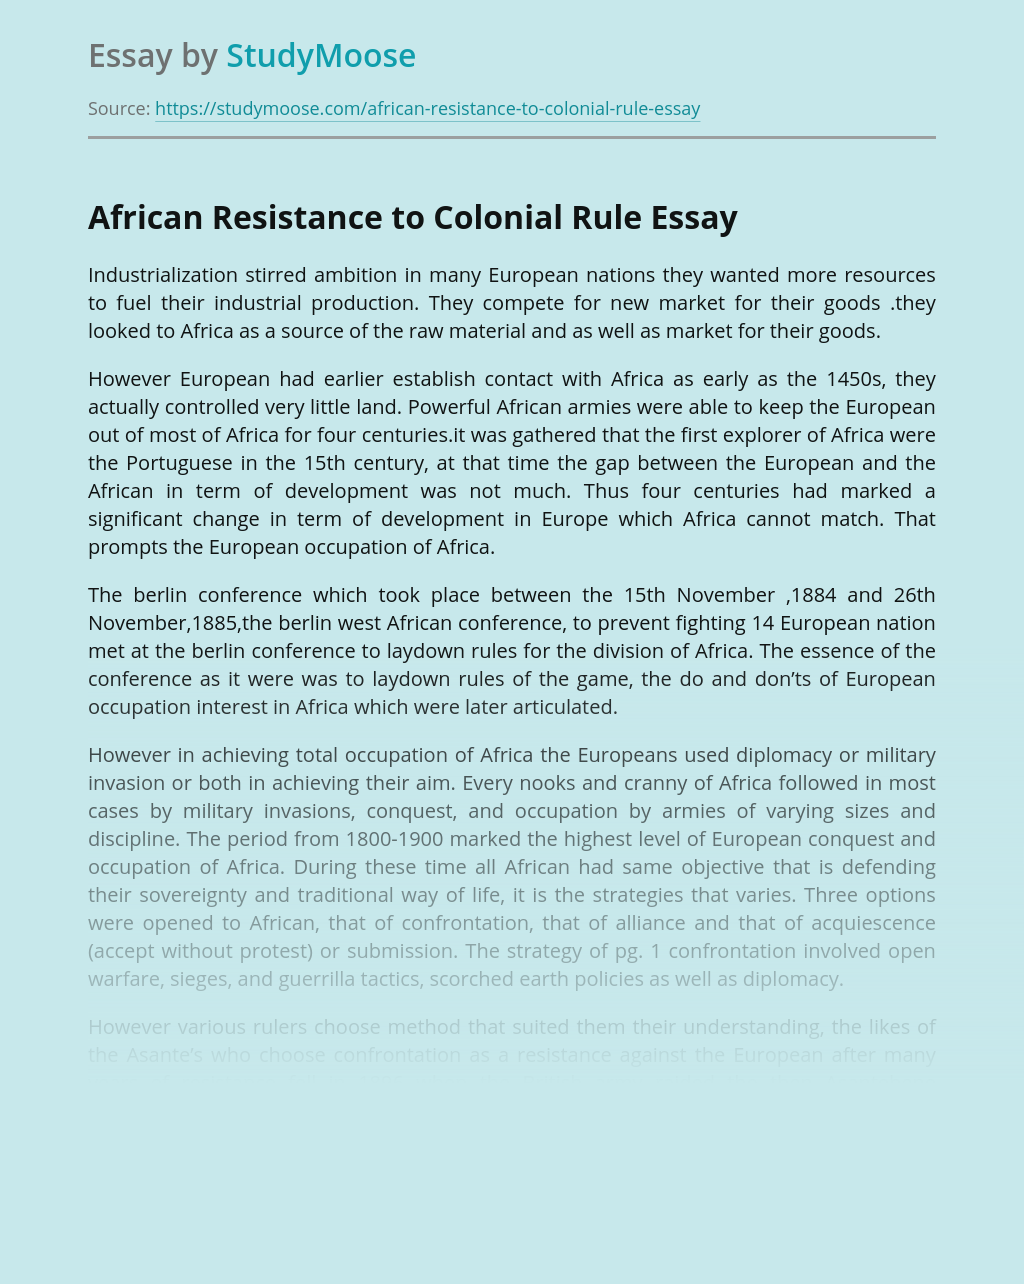 African Resistance to Colonization